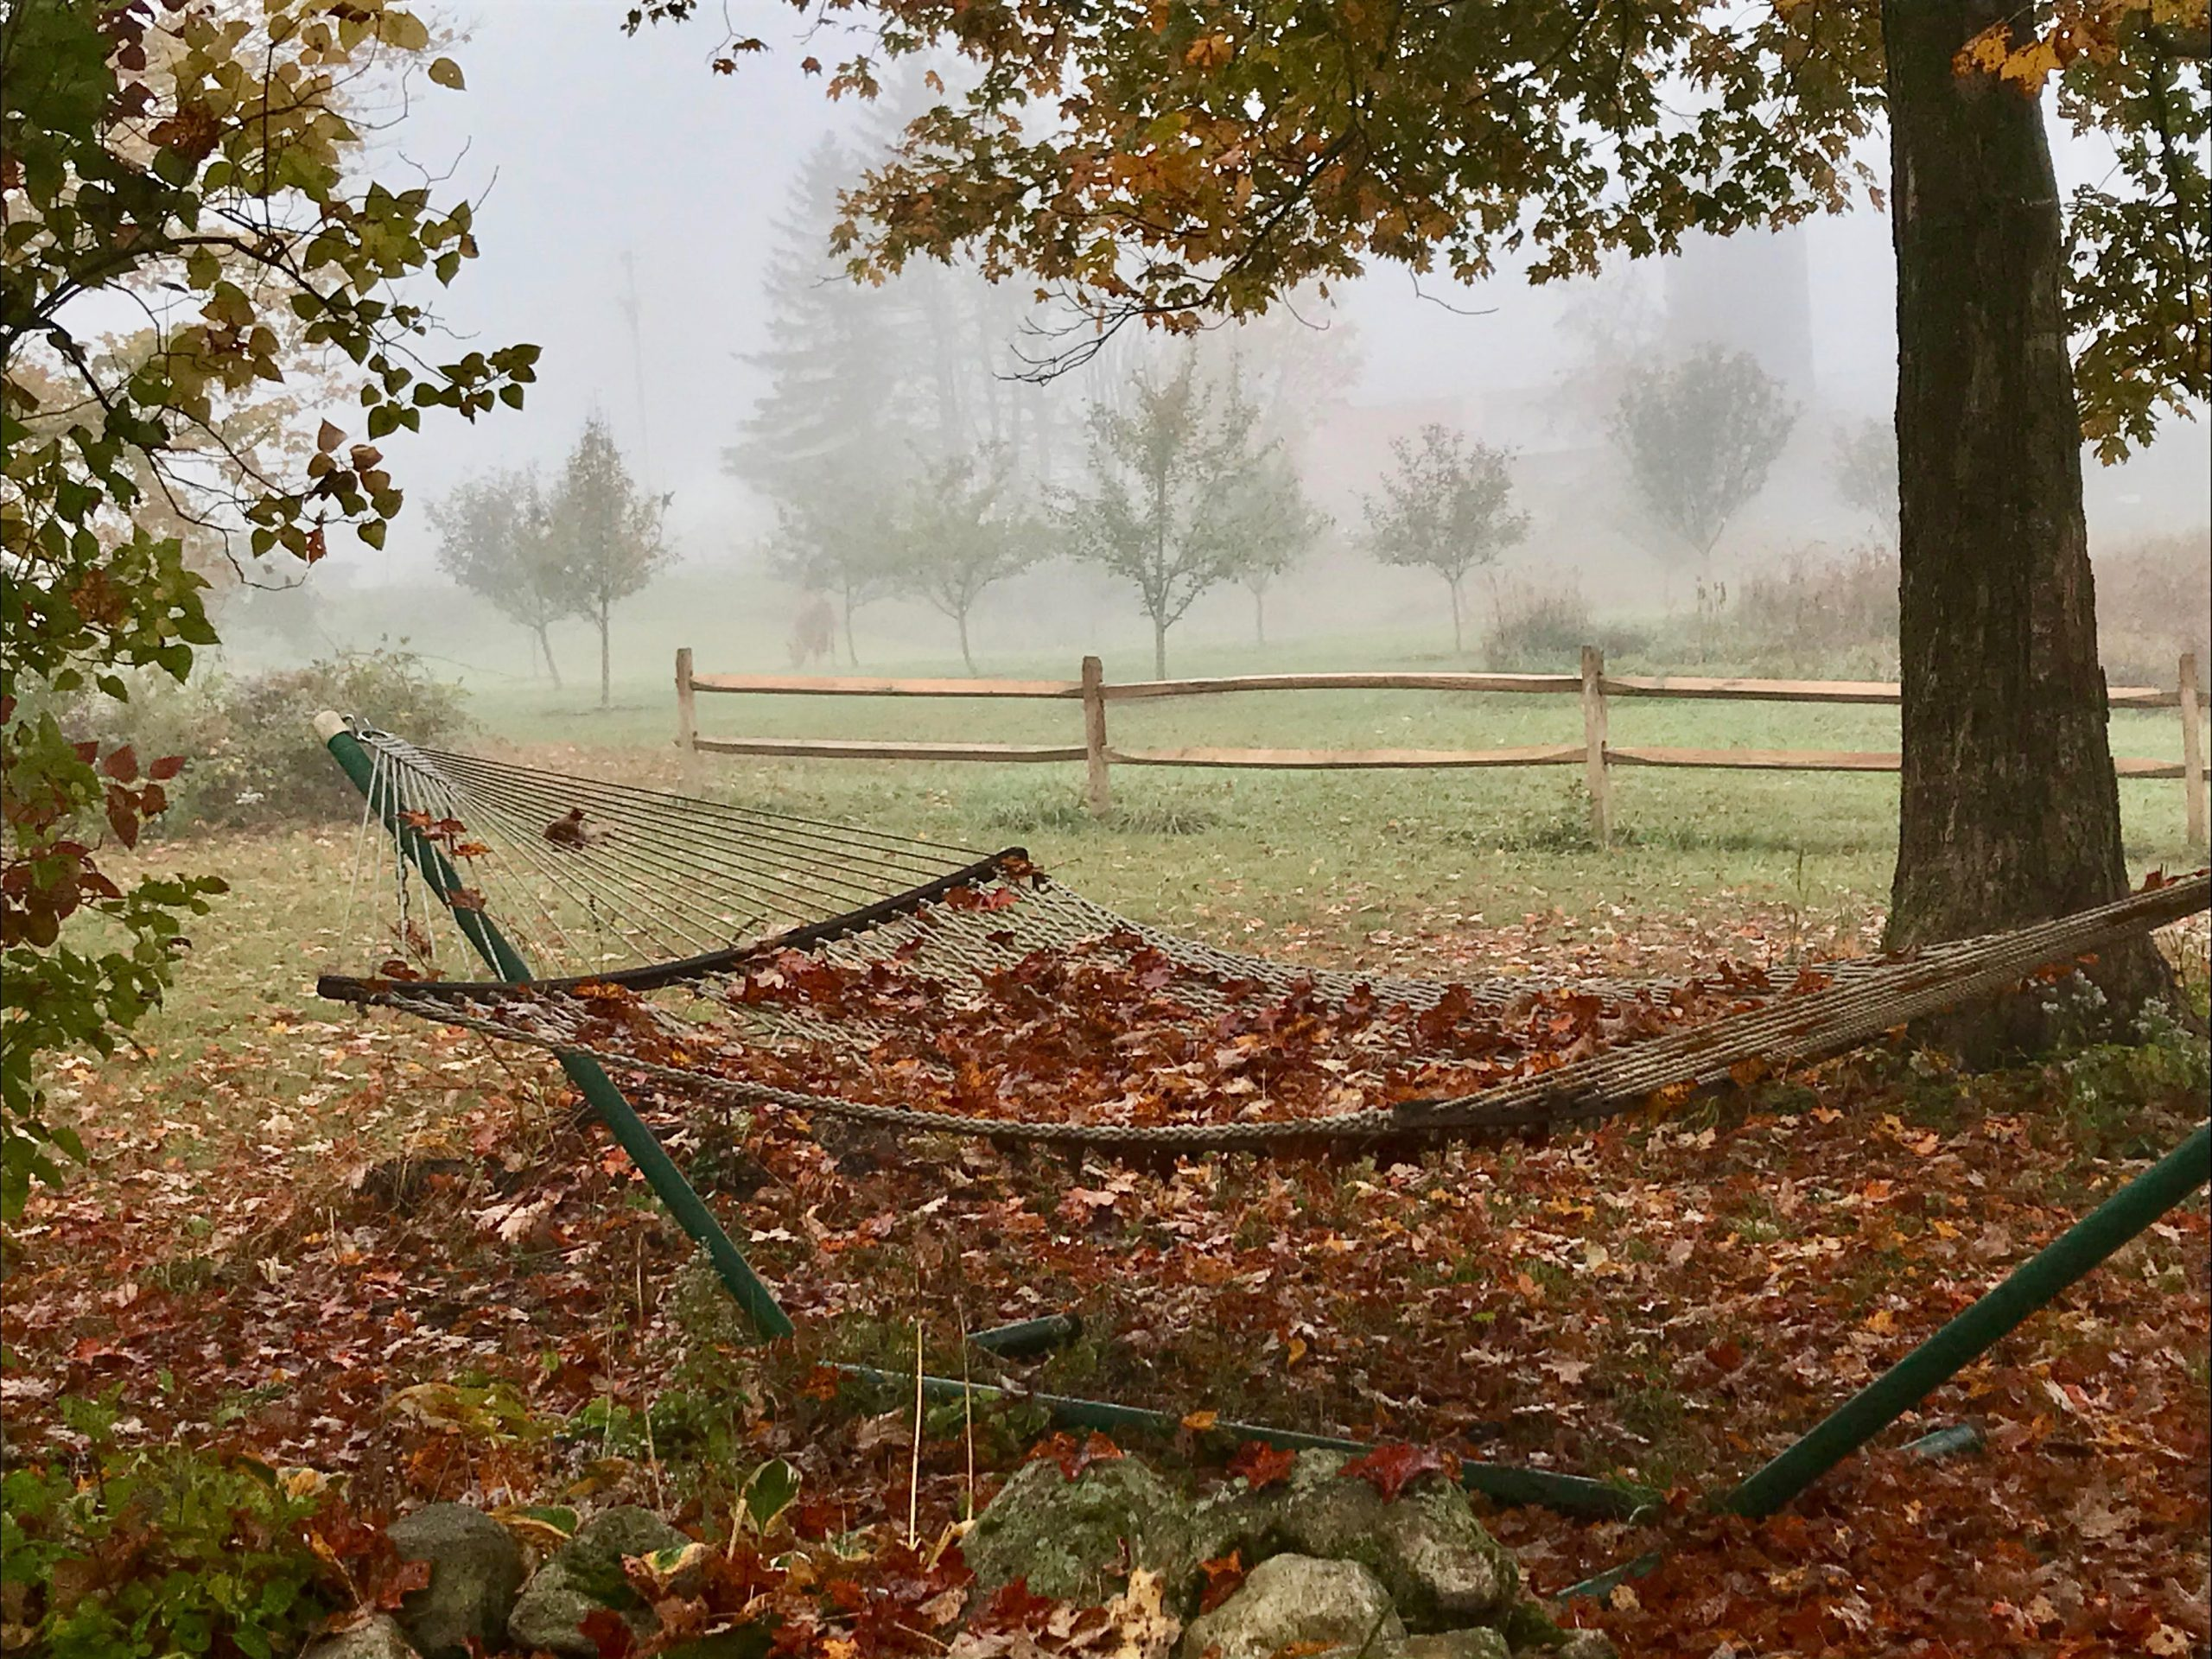 Contest Entry #13 - The Hammock - Photo of Hammock on a stand surrounded by fall leaves with split rail fence and misty apple orchard behind it